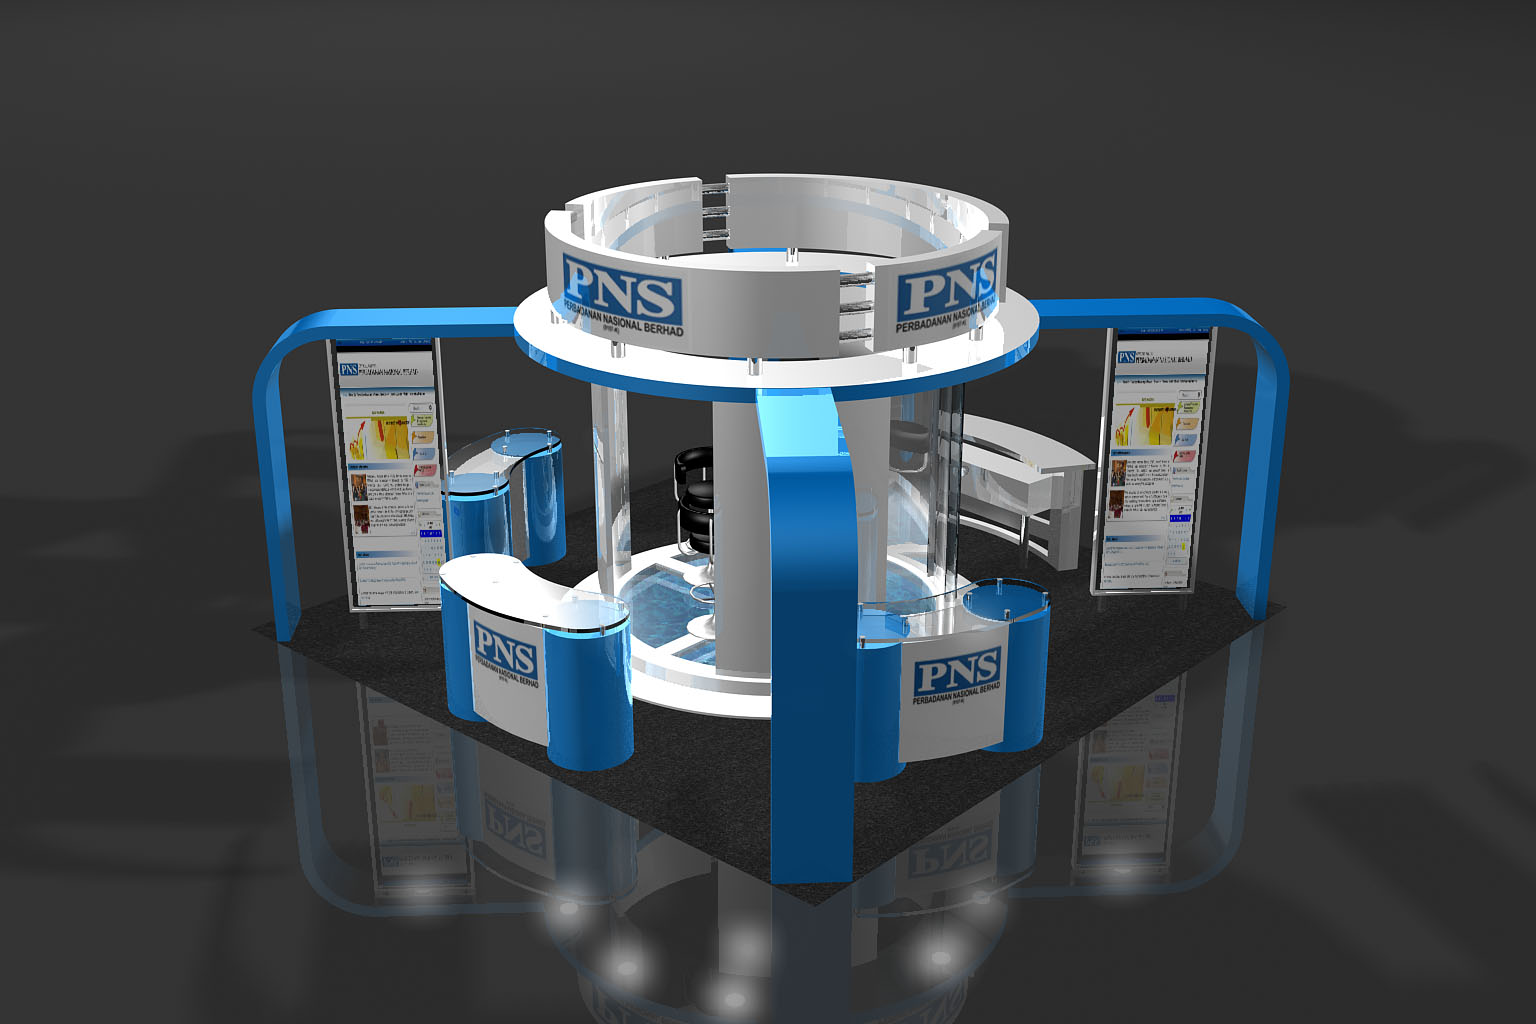 Exhibition Booth Design : Deepsrepyh exhibition booth design